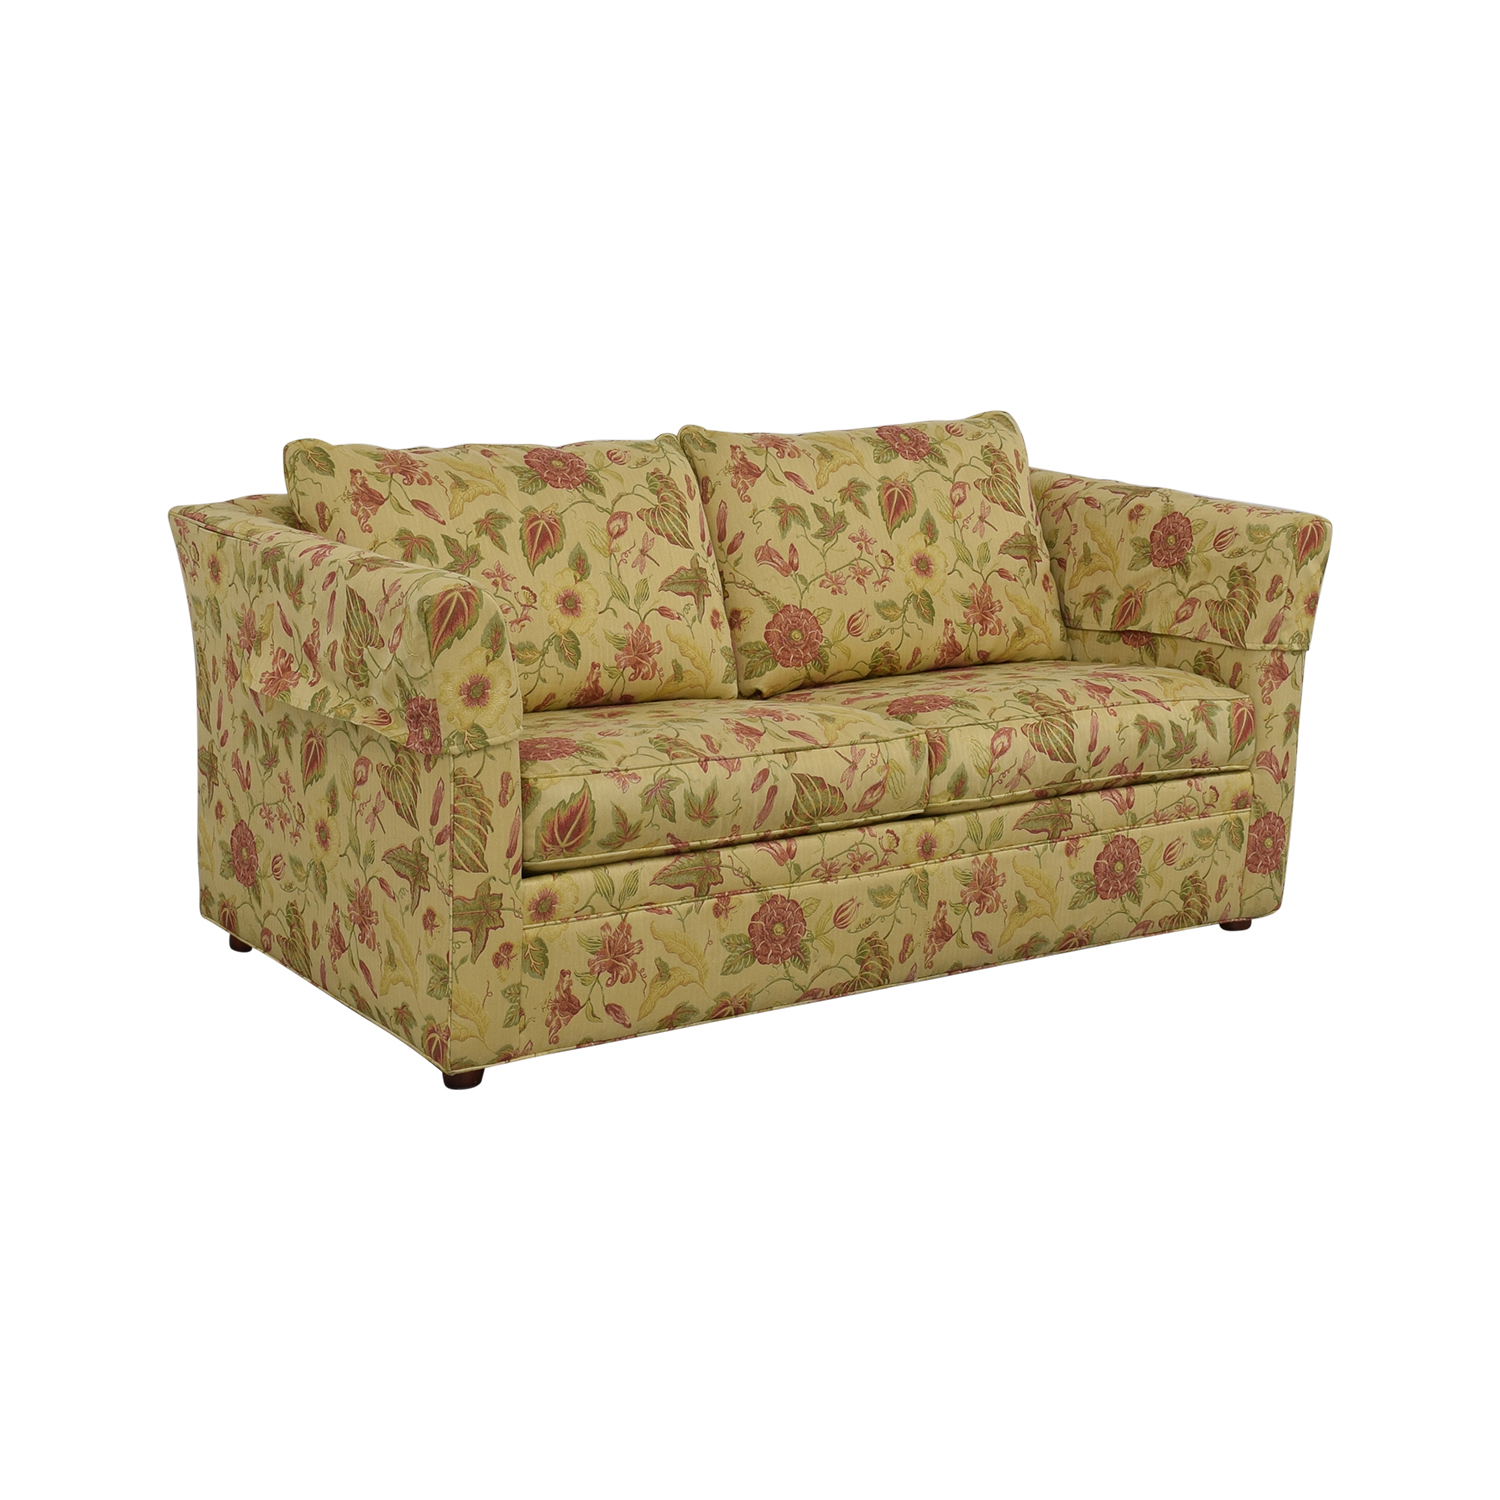 Taylor King Classic Sleeper Sofa sale